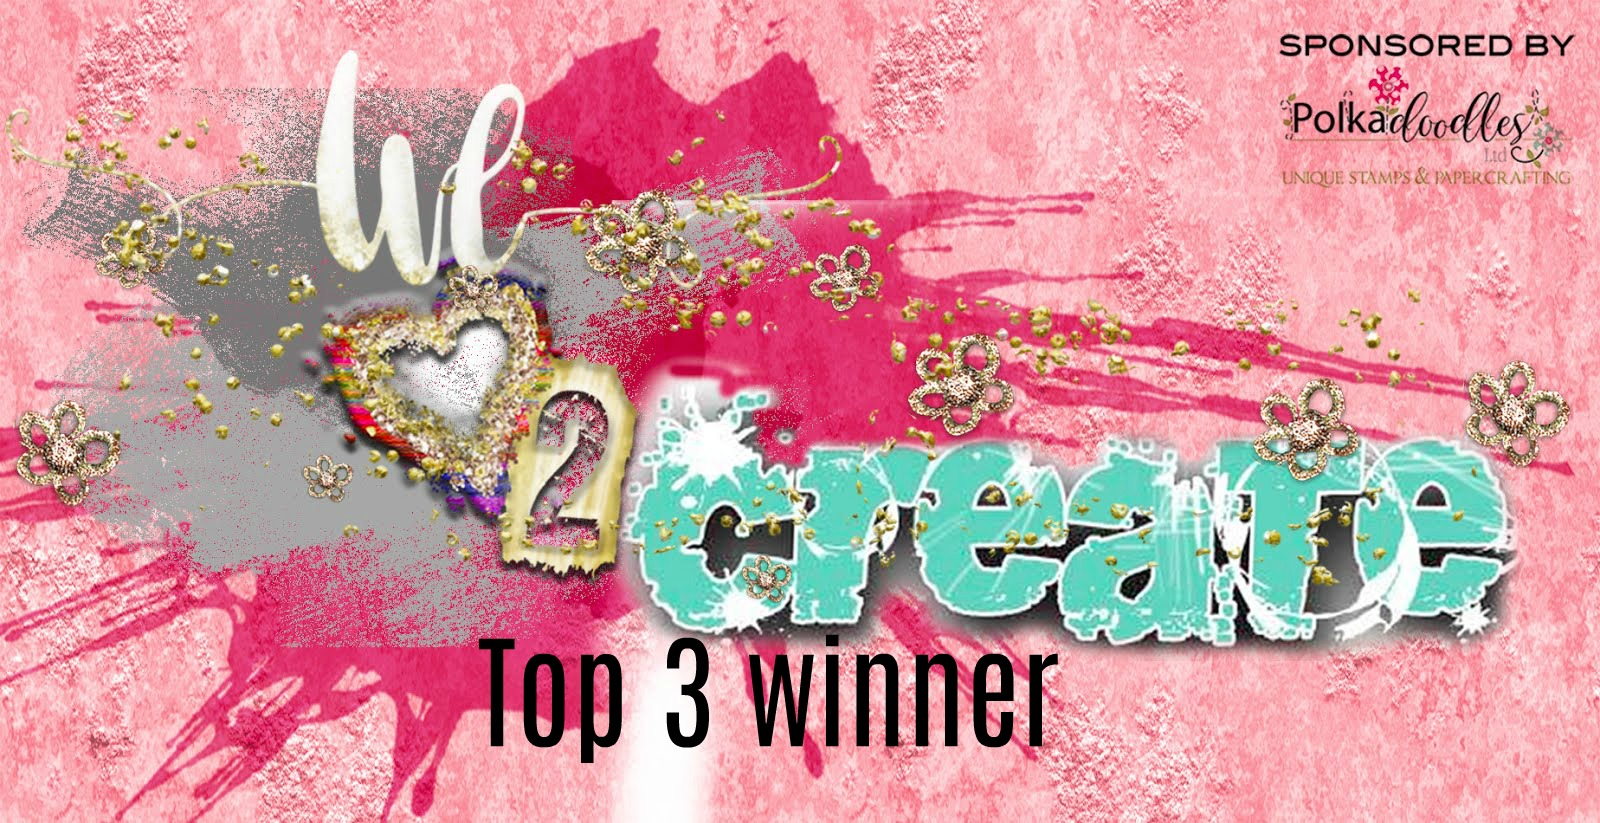 My Dragon eyes were chose as Dt favourite at We love 2 create